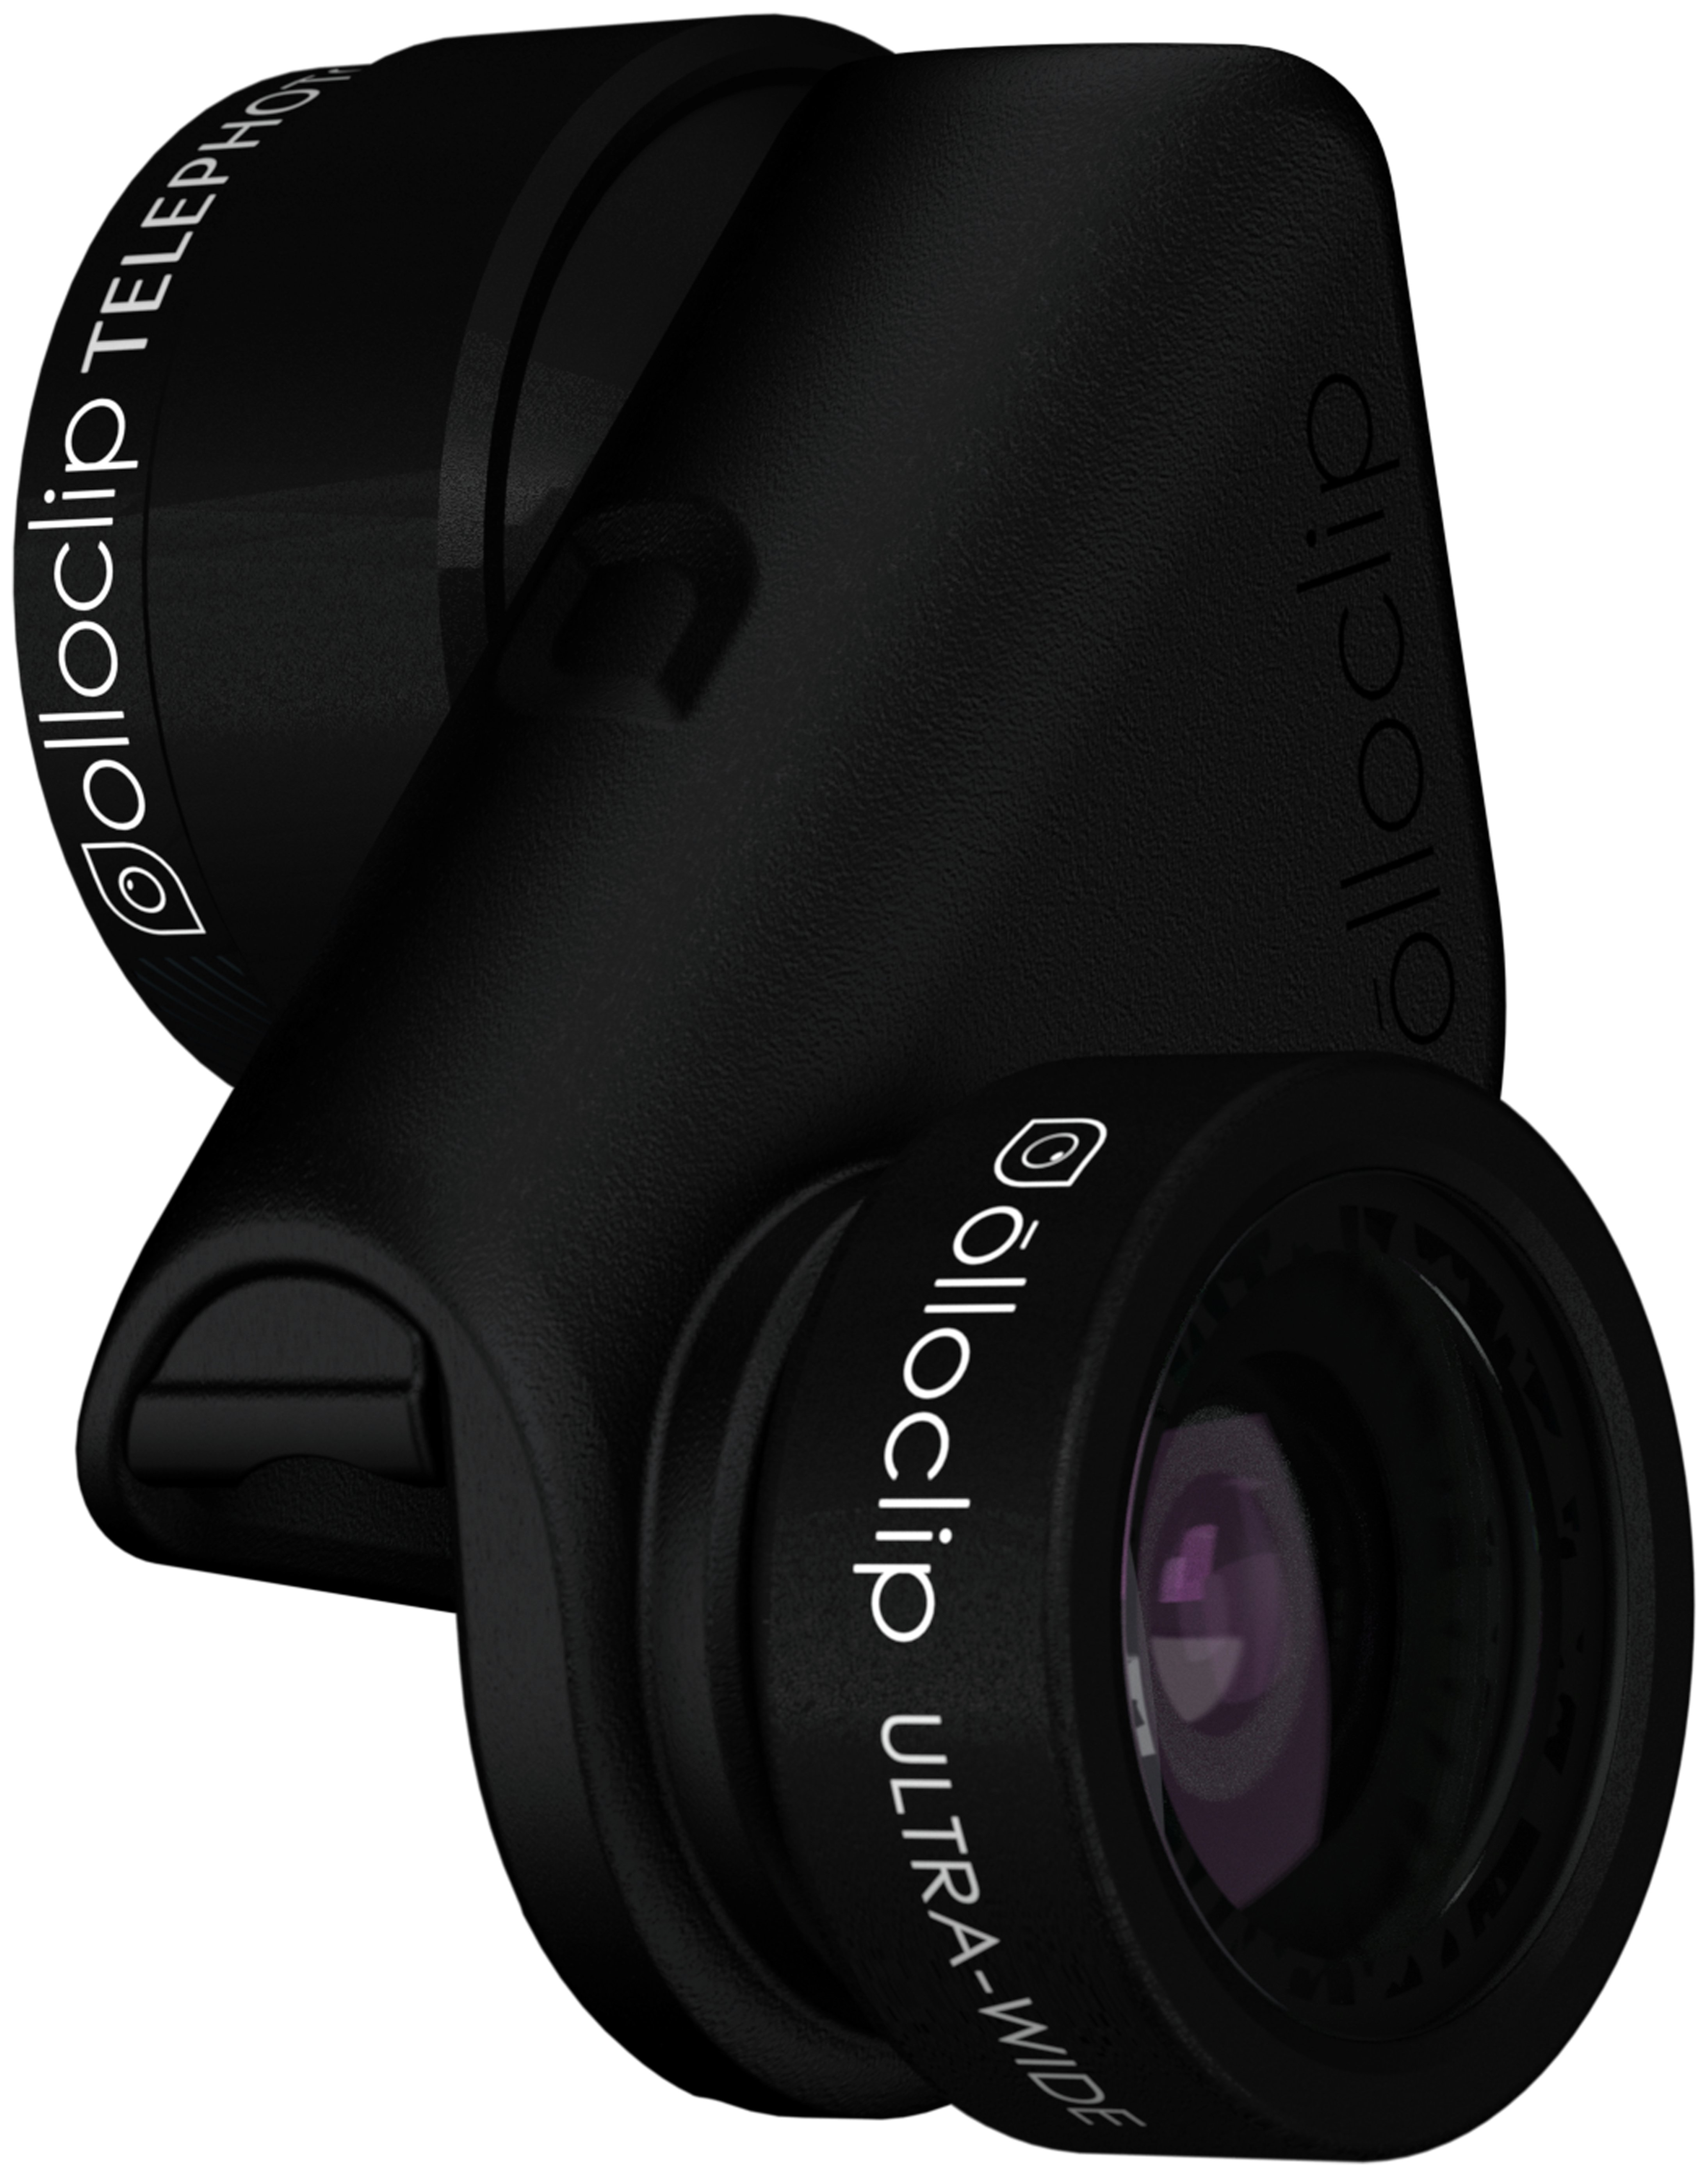 Olloclip Olloclip Active Lens for iPhone 6 and 6S - Black.